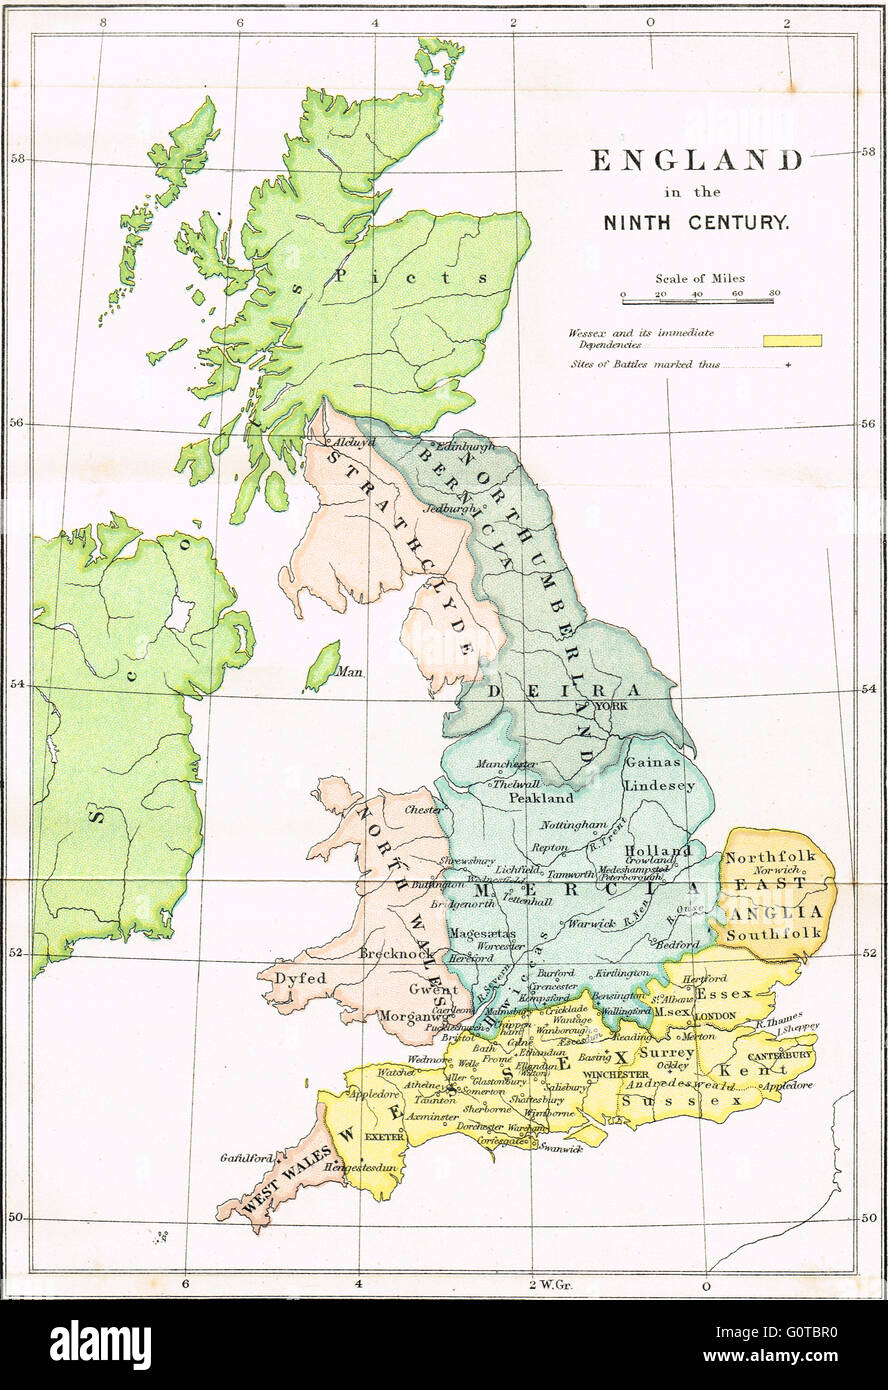 9th Century England Map Map of England in the Ninth Century showing the Anglo Saxon